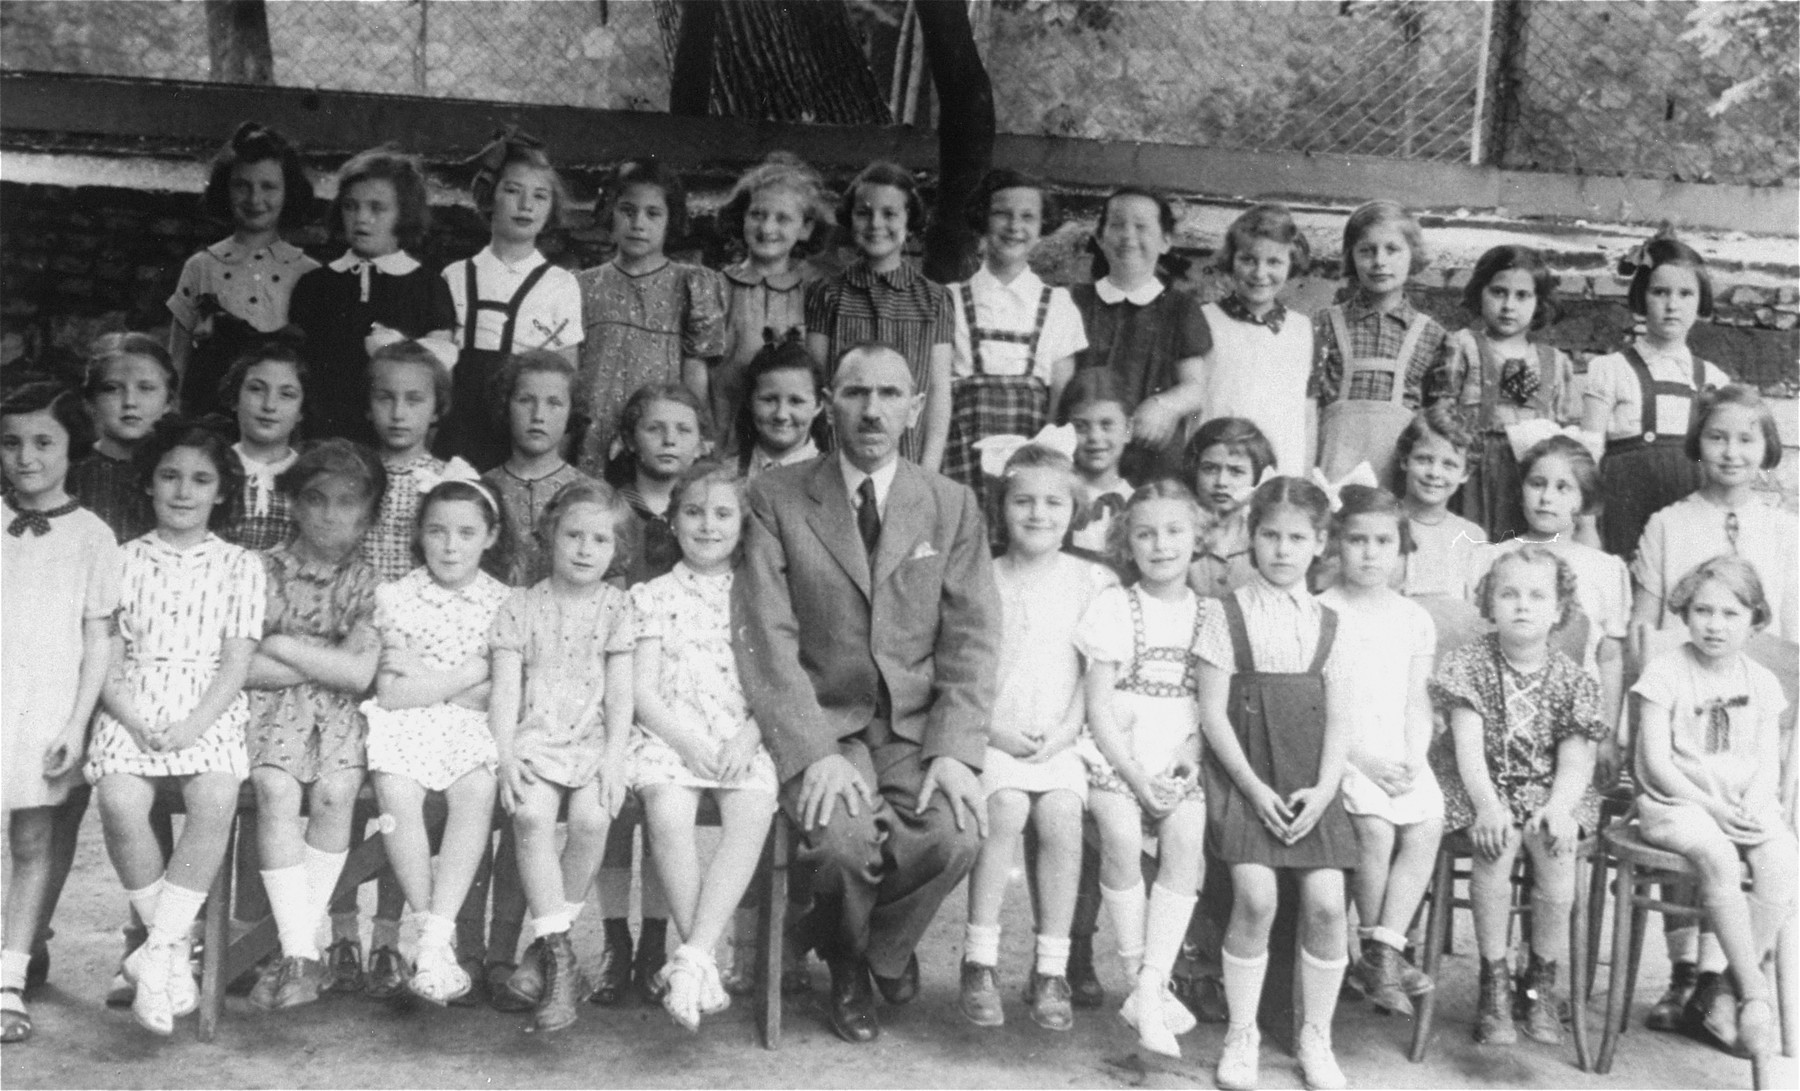 Class portrait of students at a Jewish primary school in Bratislava.